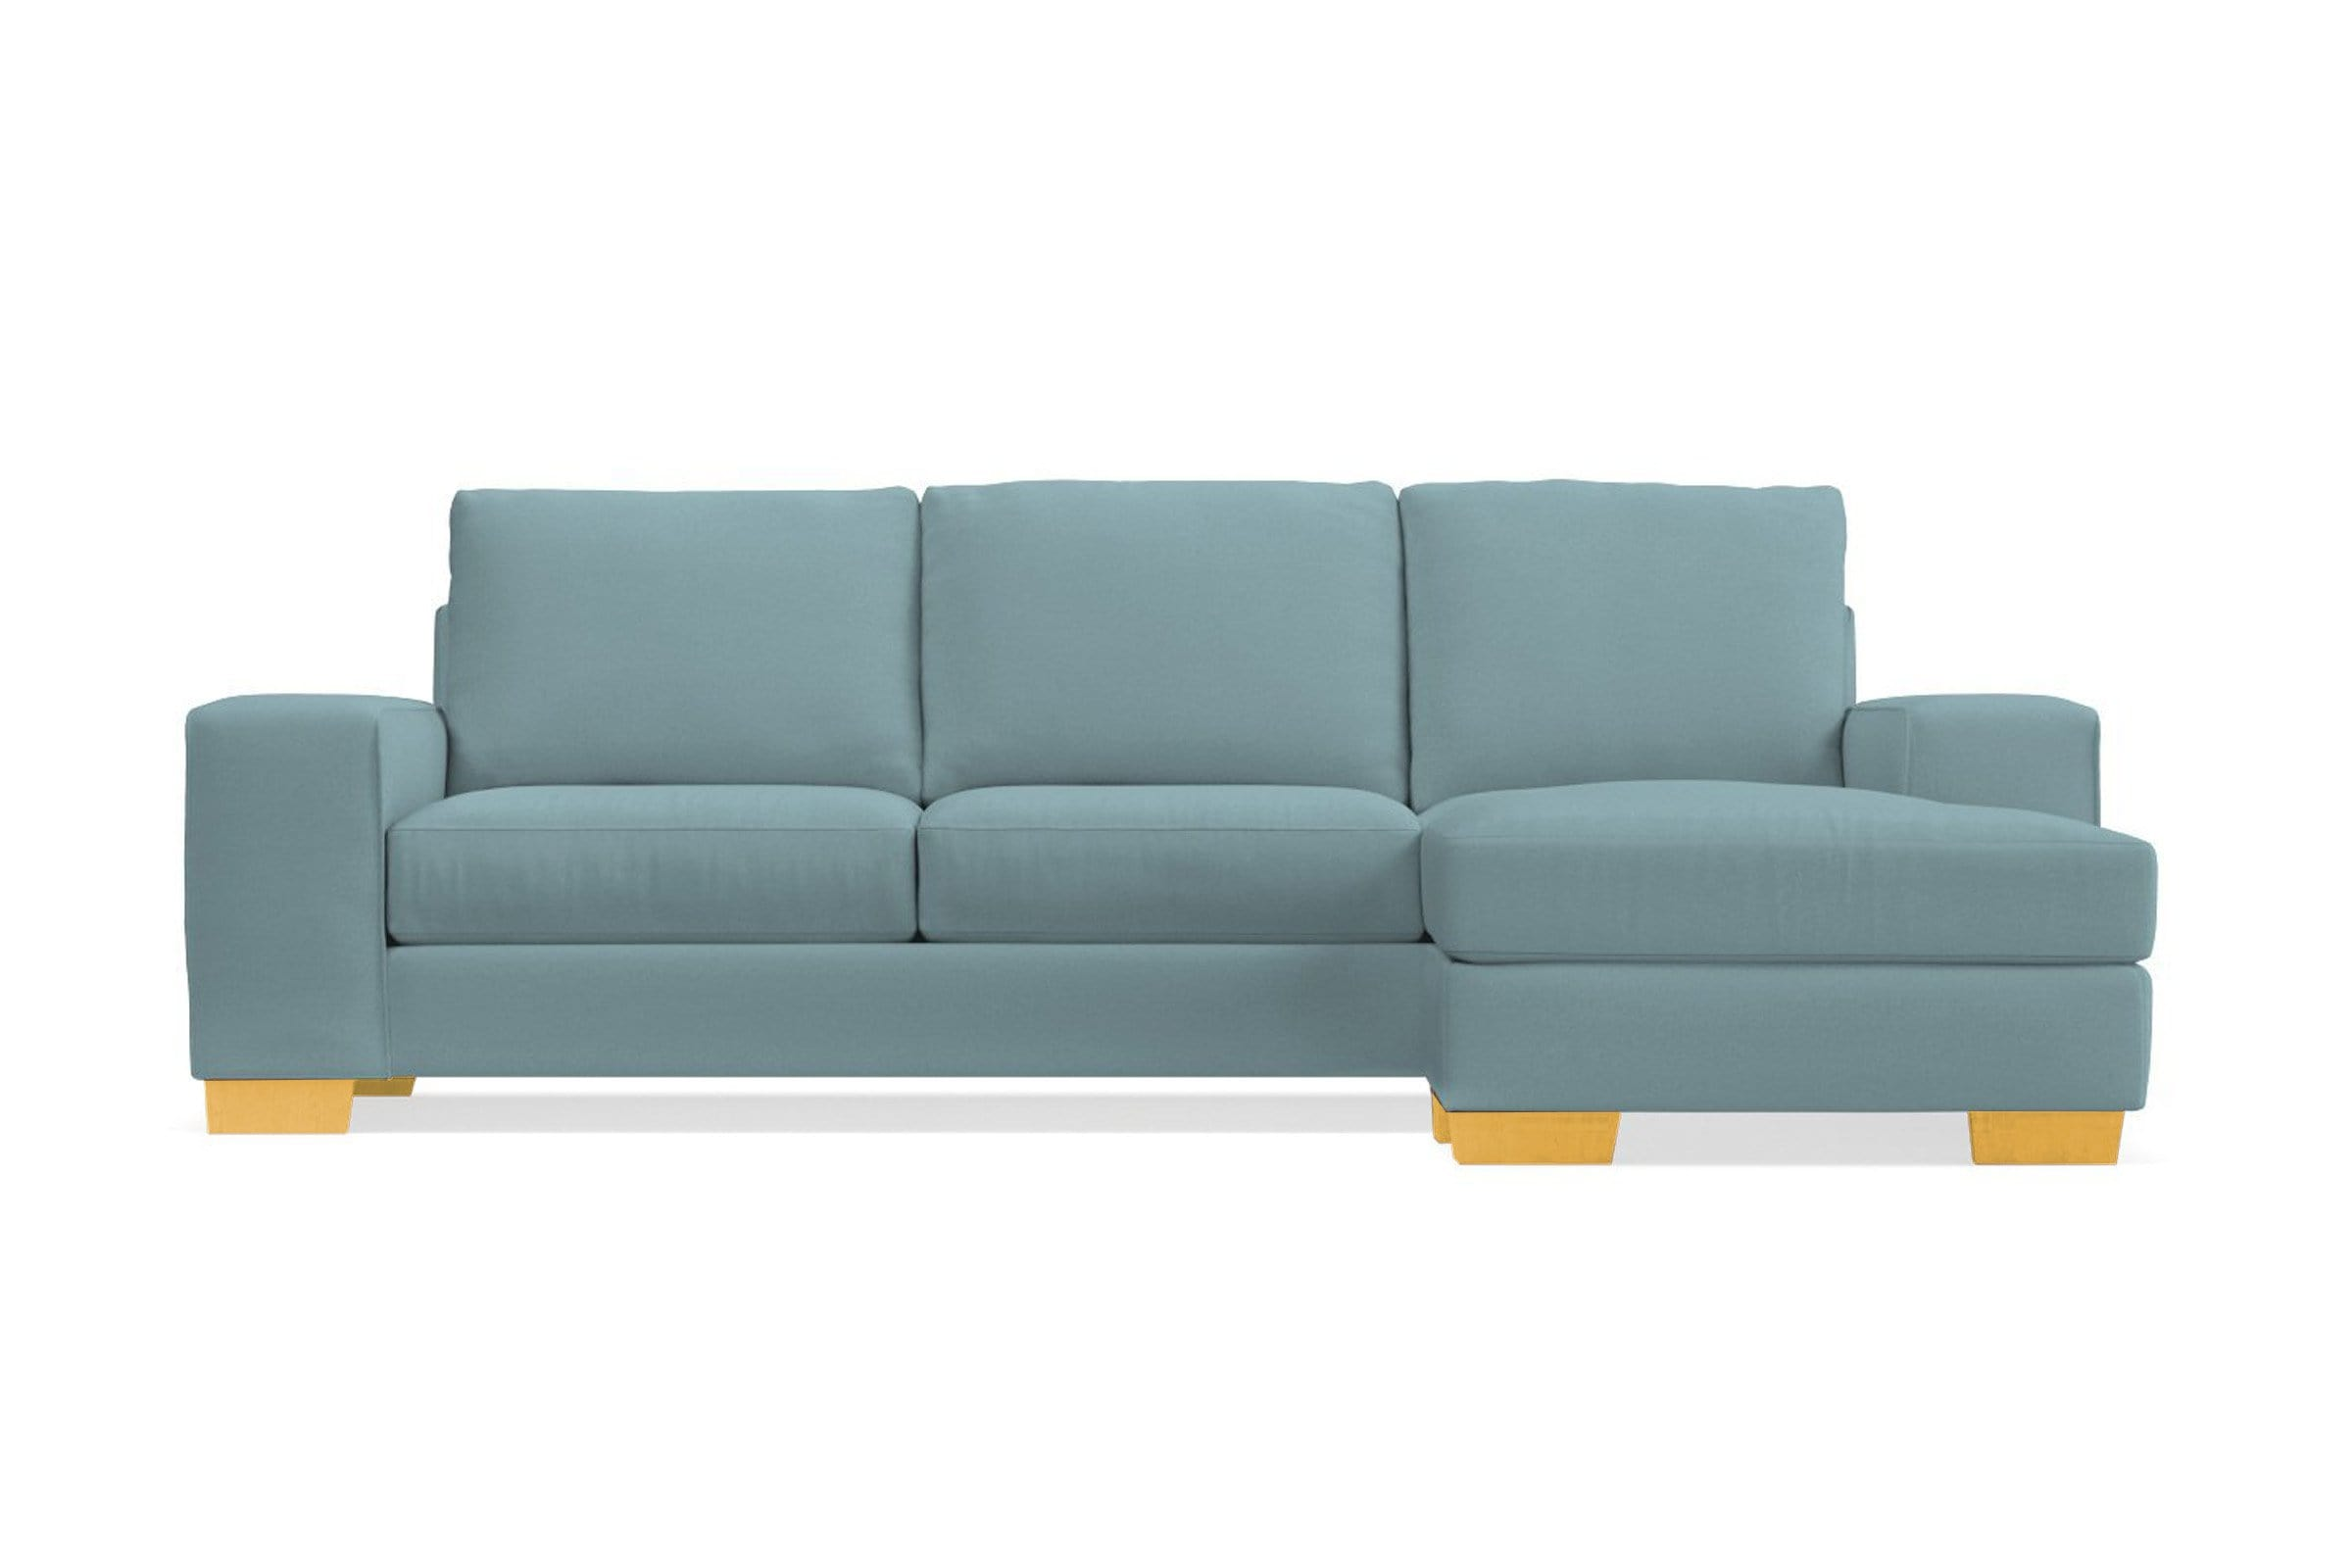 Melrose Reversible Chaise Sleeper Sofa - Blue Velvet -  Pull Out Couch Bed Made in the USA - Sold by Apt2B